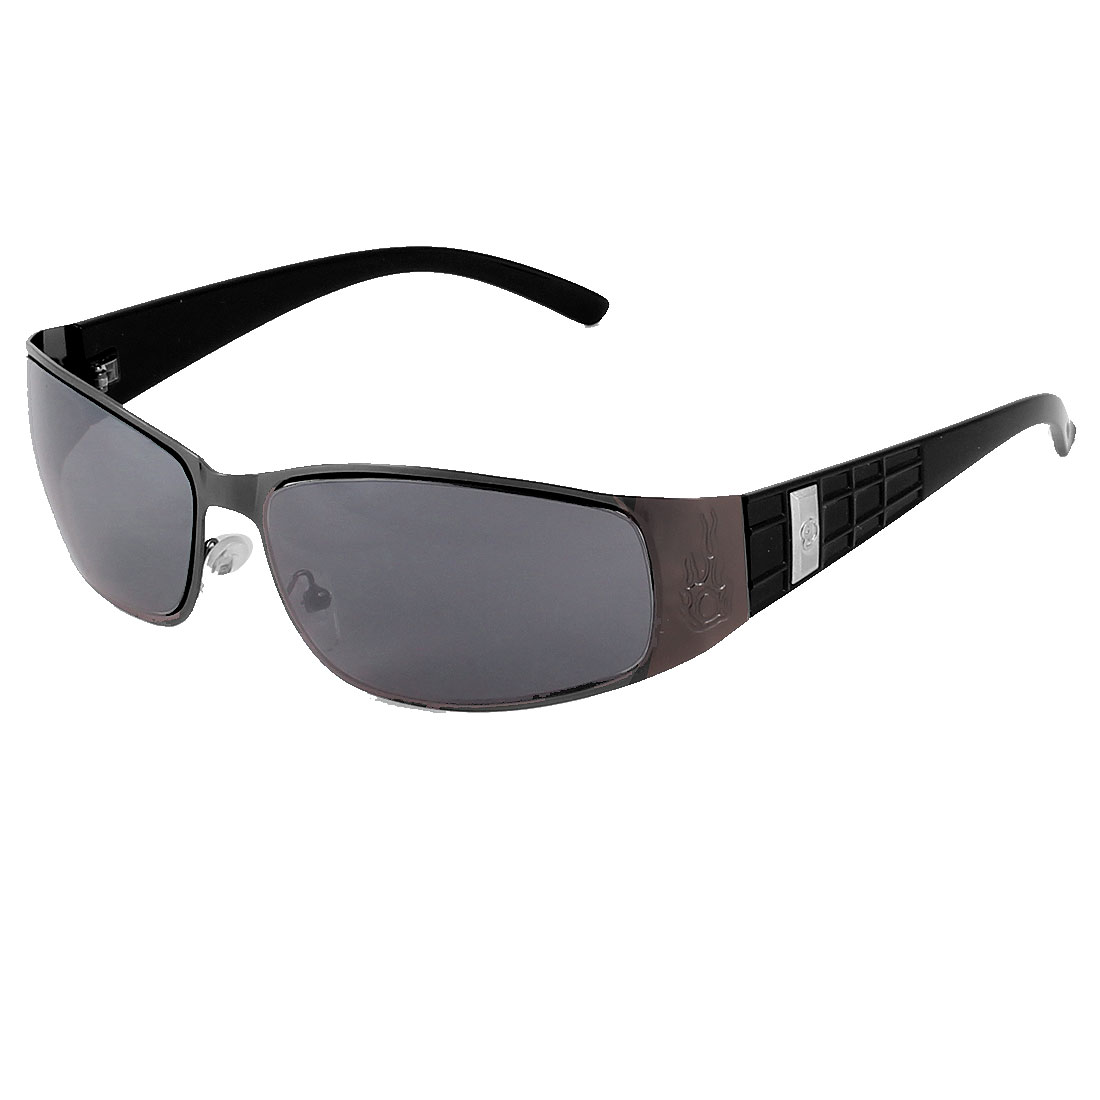 Black Full Frame Tinted Lens Single Brige Sunglasses for Unisex